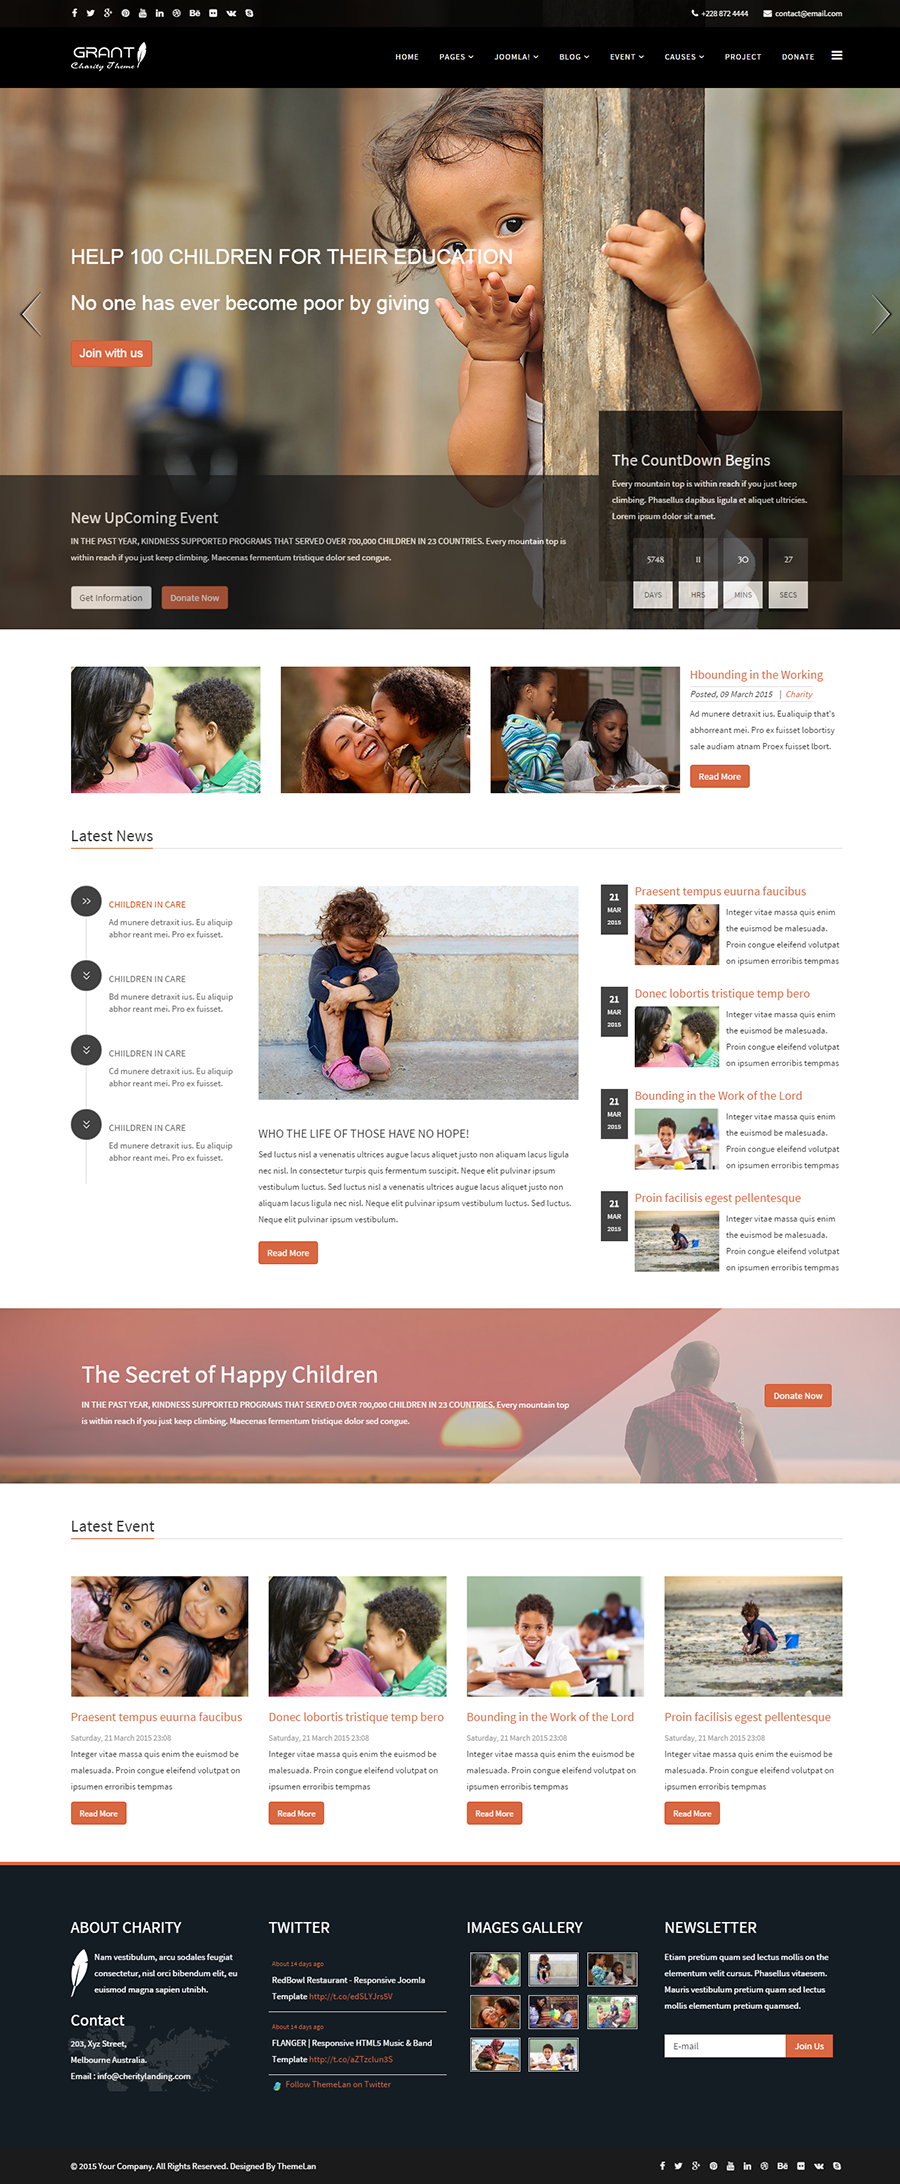 Superior Grant   Charity / Nonprofit / NGO HTML5 Template Within Ngo Templates